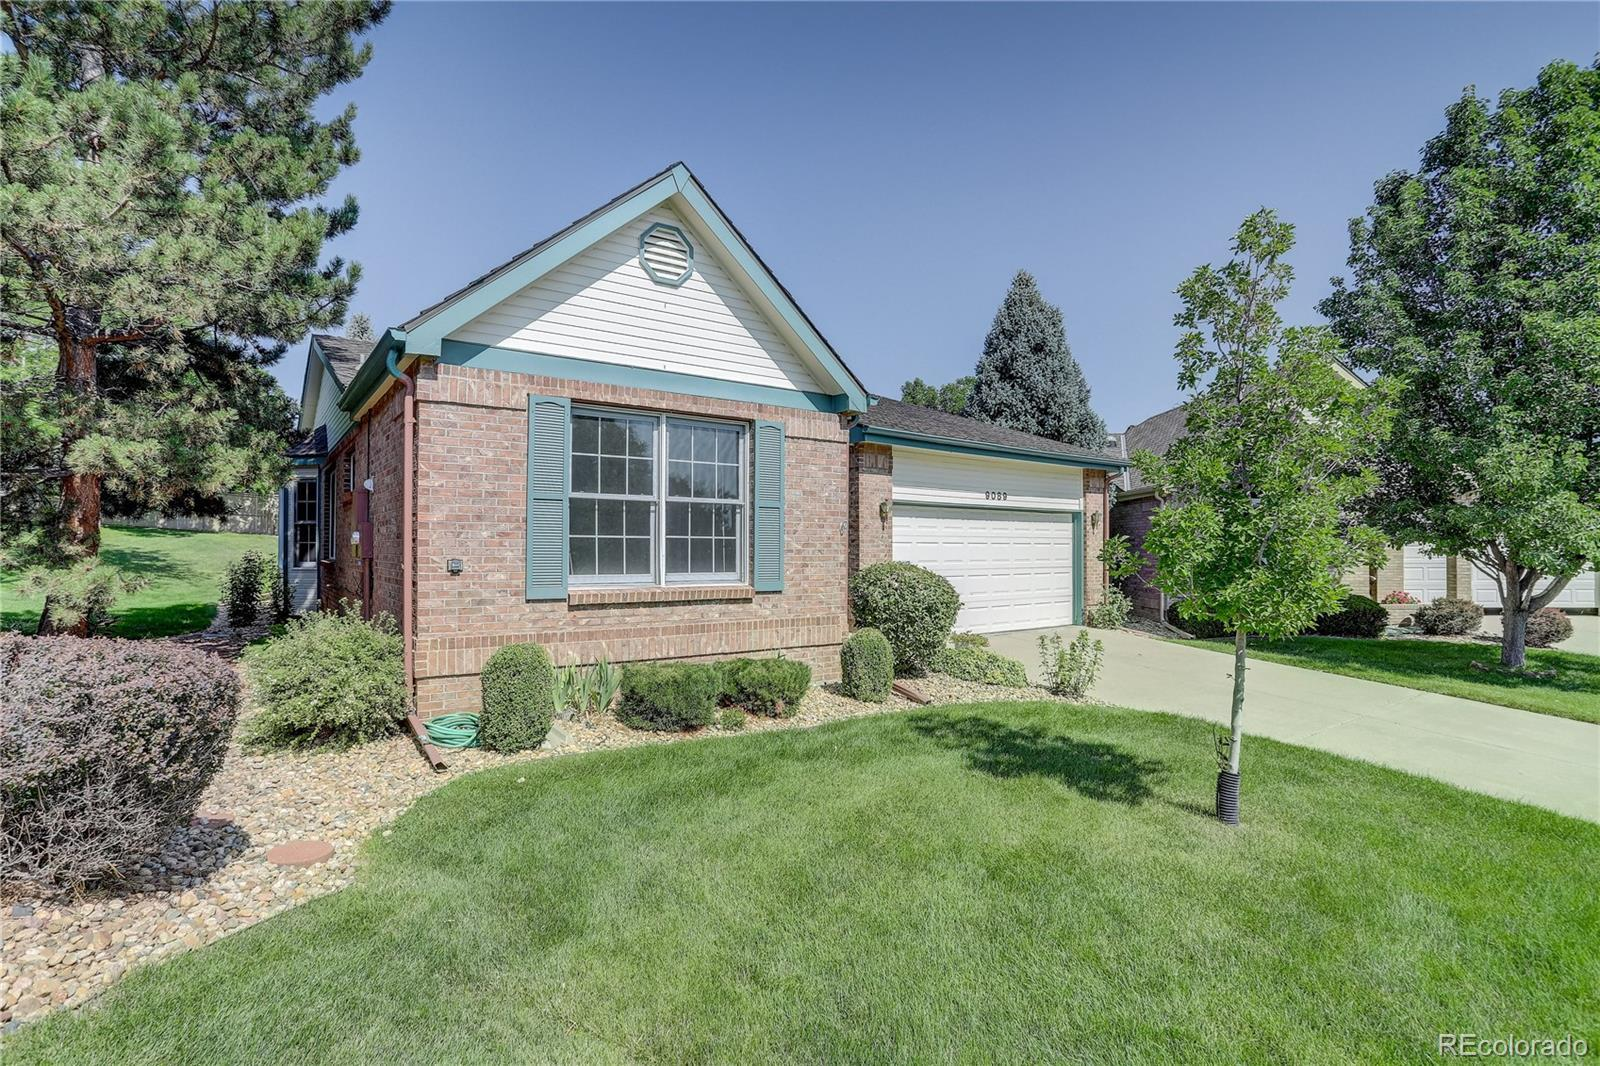 9089 Greenspointe Court, Highlands Ranch, CO 80130 - #: 2650032